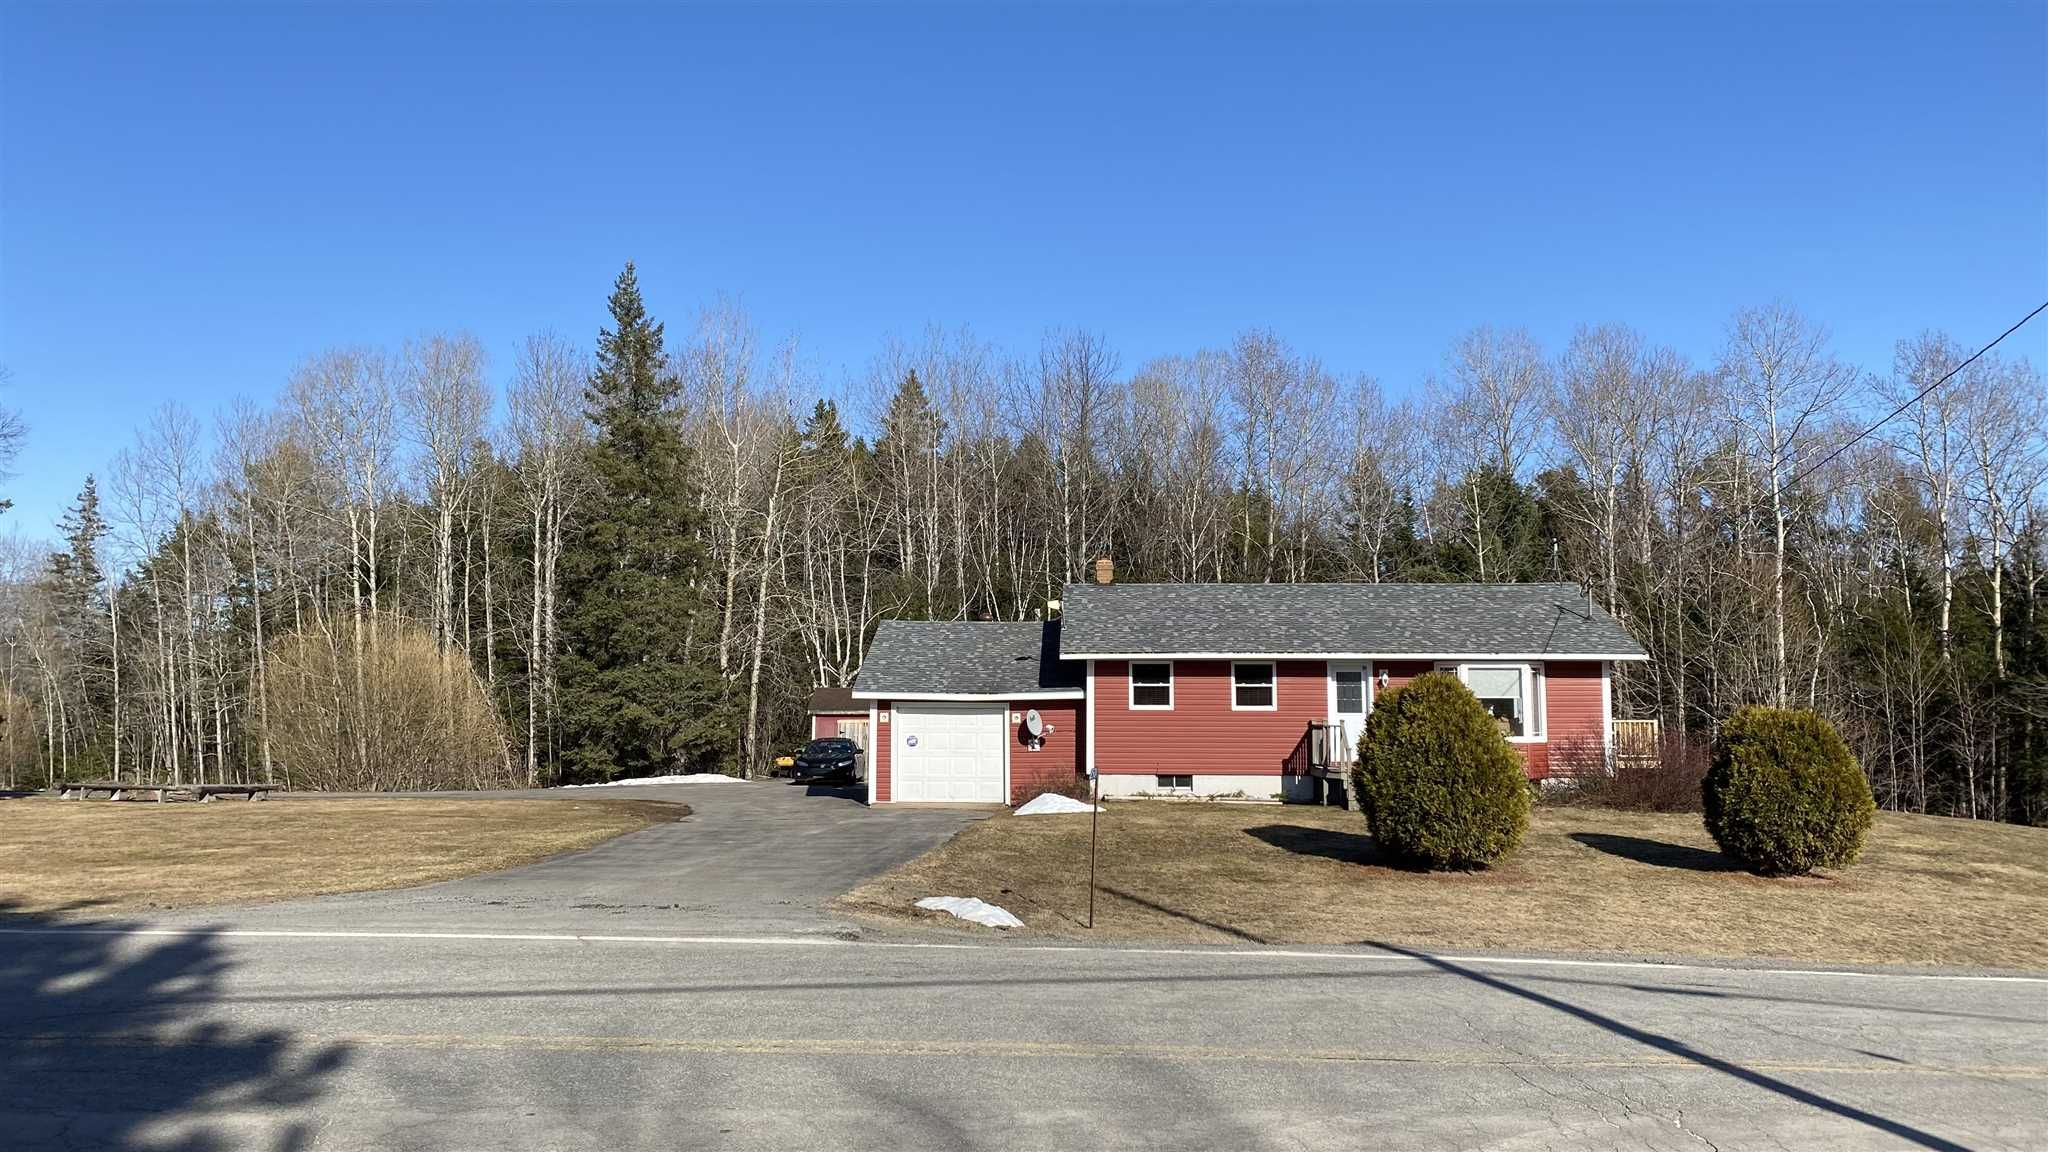 Main Photo: 8500 Sherbrooke Road in Mcphersons Mills: 108-Rural Pictou County Residential for sale (Northern Region)  : MLS®# 202105846